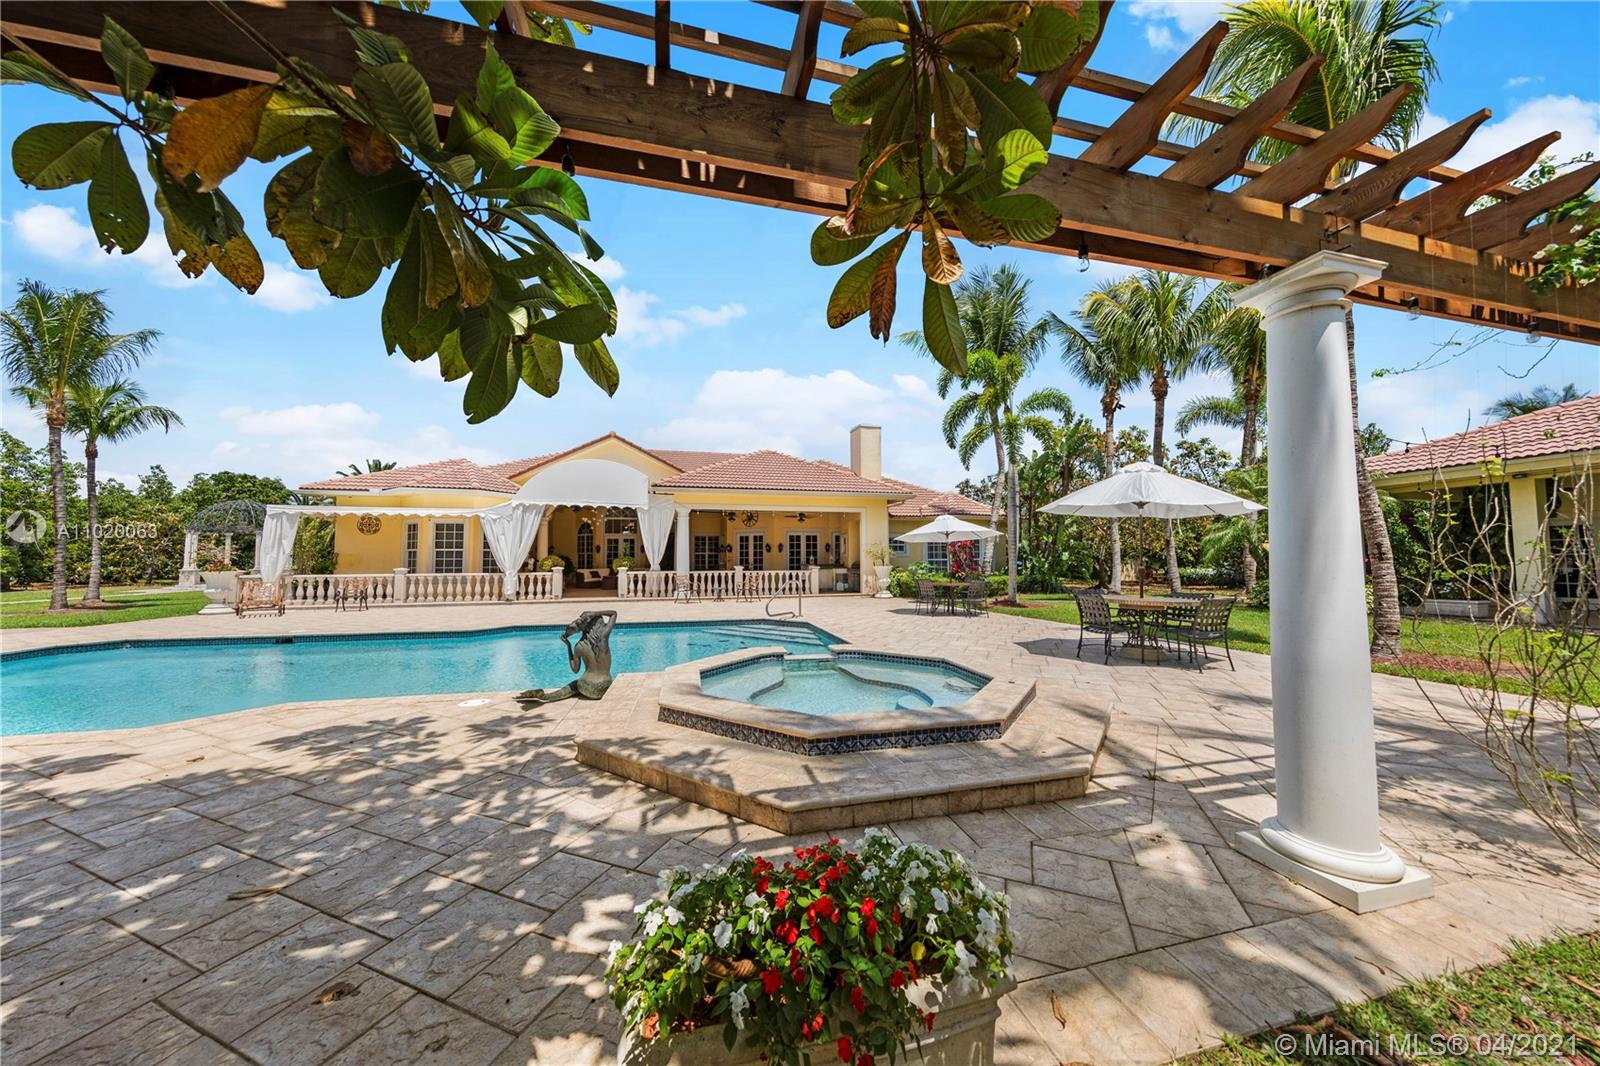 REAR VIEW OF THE MAIN RESIDENCE WITH A PARTIAL POOL HOUSE VIEW. THIS PLACE IS SET UP FOR ENTERTAINING...OR BRING THE ENTOURAGE AND ENJOY THE PEACE, QUIET AND PRIVACY OF THIS RESORT LEVEL HOME